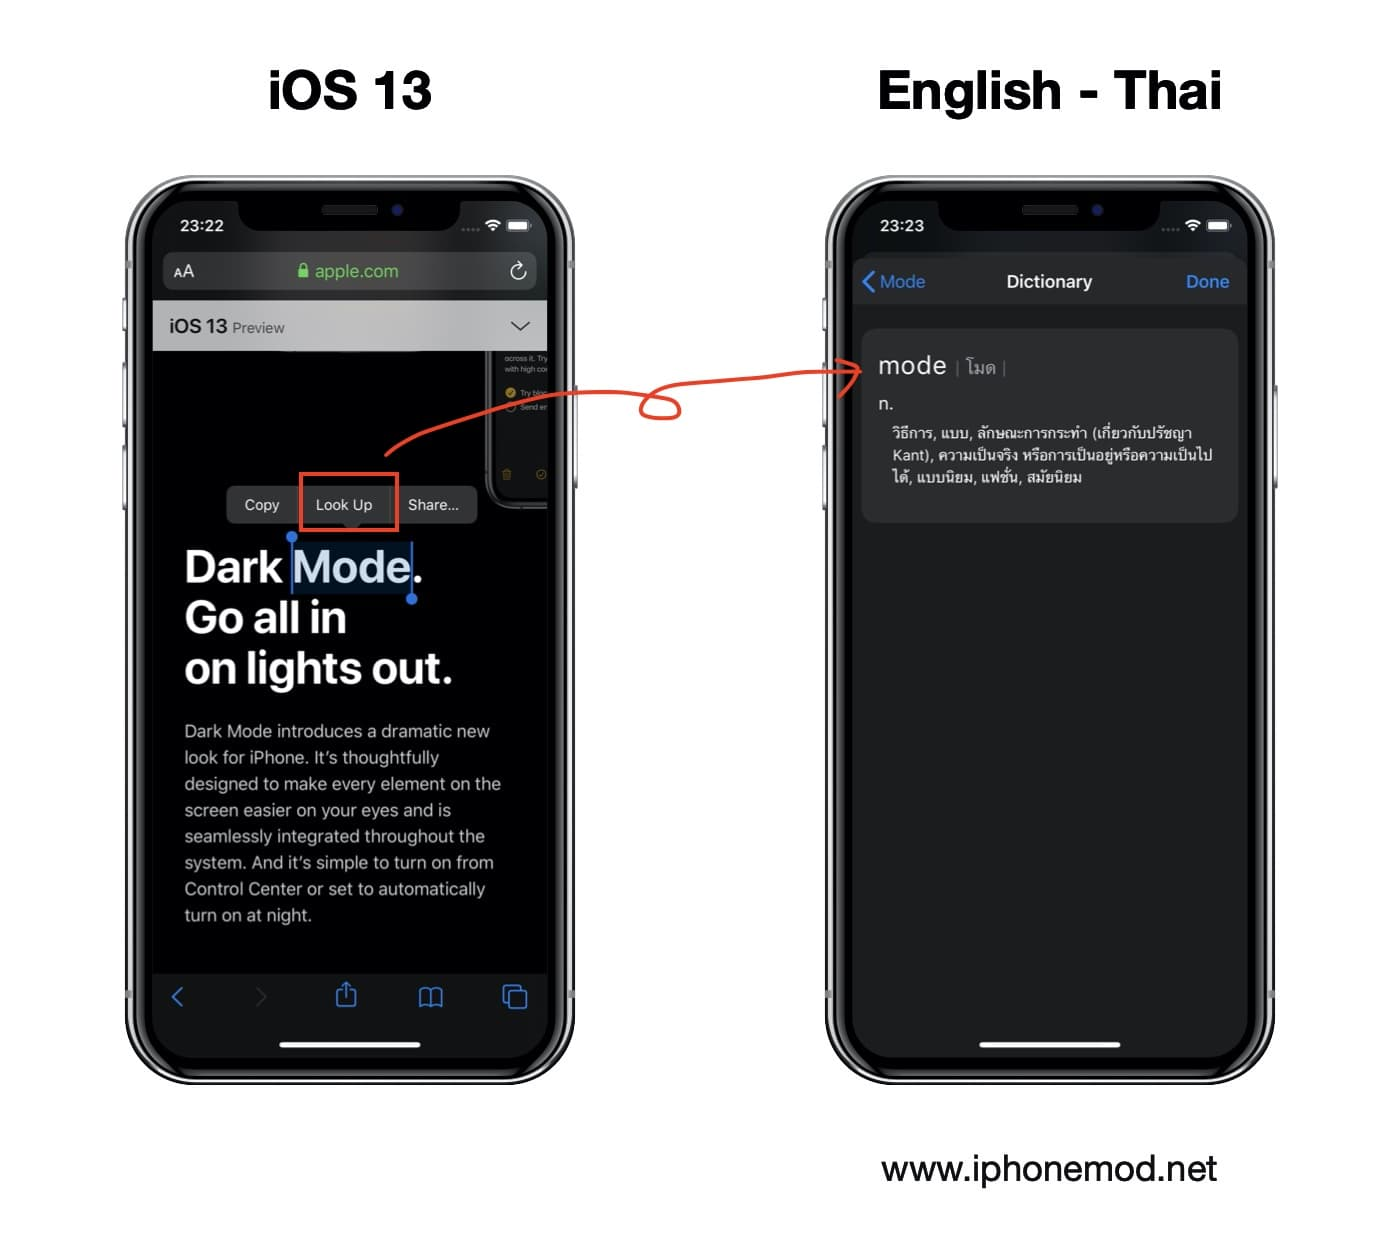 Ios 13 English To Thai To English Dictionary